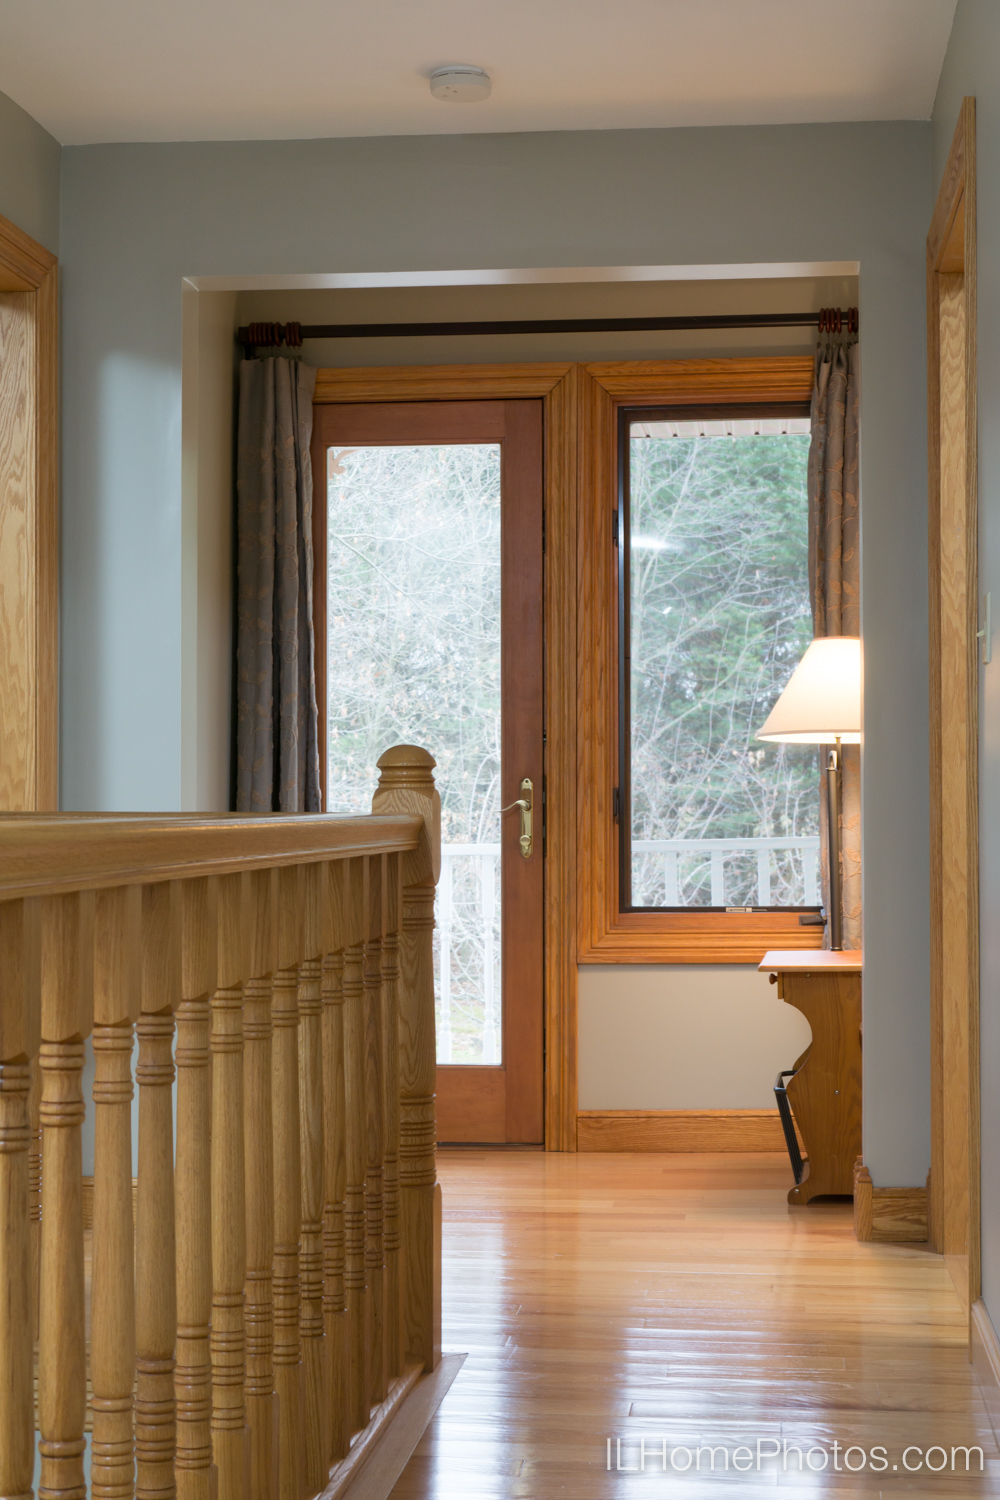 Interior hallway and stair rail detail photograph for real estate :: Illinois Home Photography by Michael Gowin, Lincoln, IL